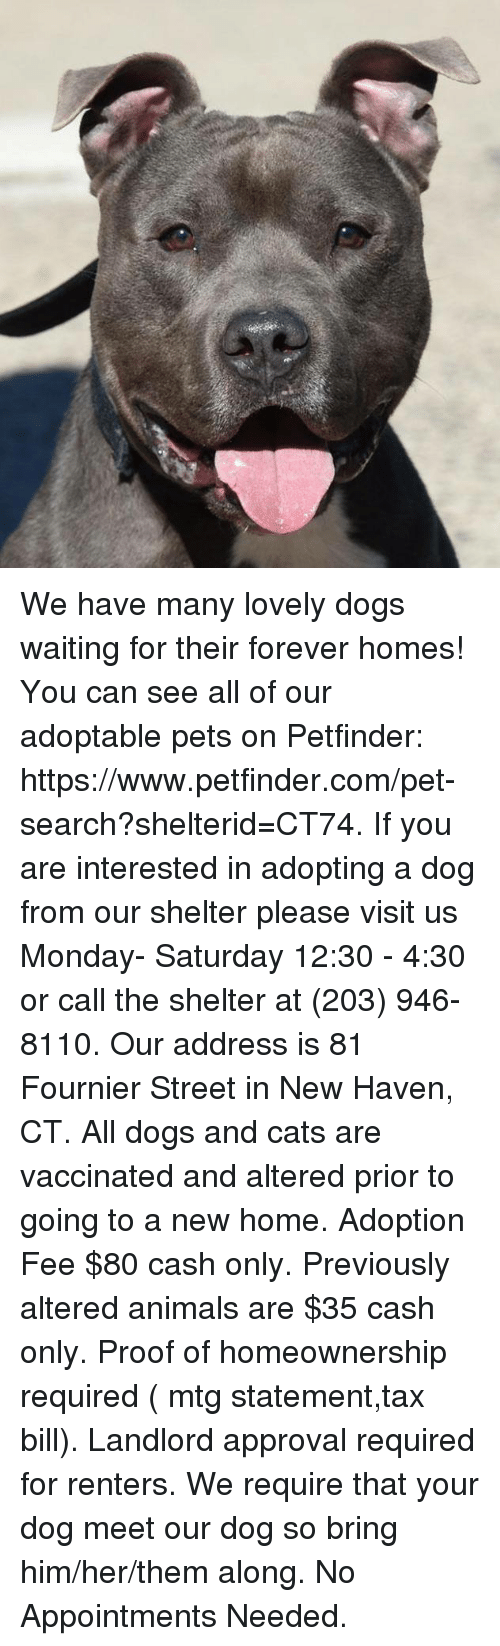 dog-and-cats: We have many lovely dogs waiting for their forever homes! You can see all of our adoptable pets on Petfinder:  https://www.petfinder.com/pet-search?shelterid=CT74.  If you are interested in adopting a dog from our shelter please visit us Monday- Saturday 12:30 - 4:30 or call the shelter at (203) 946-8110.  Our address is 81 Fournier Street in New Haven, CT.  All dogs and cats are vaccinated and altered prior to going to a new home. Adoption Fee $80 cash only. Previously altered animals are $35 cash only. Proof of homeownership required ( mtg statement,tax bill). Landlord approval required for renters. We require that your dog meet our dog so bring him/her/them along. No Appointments Needed.